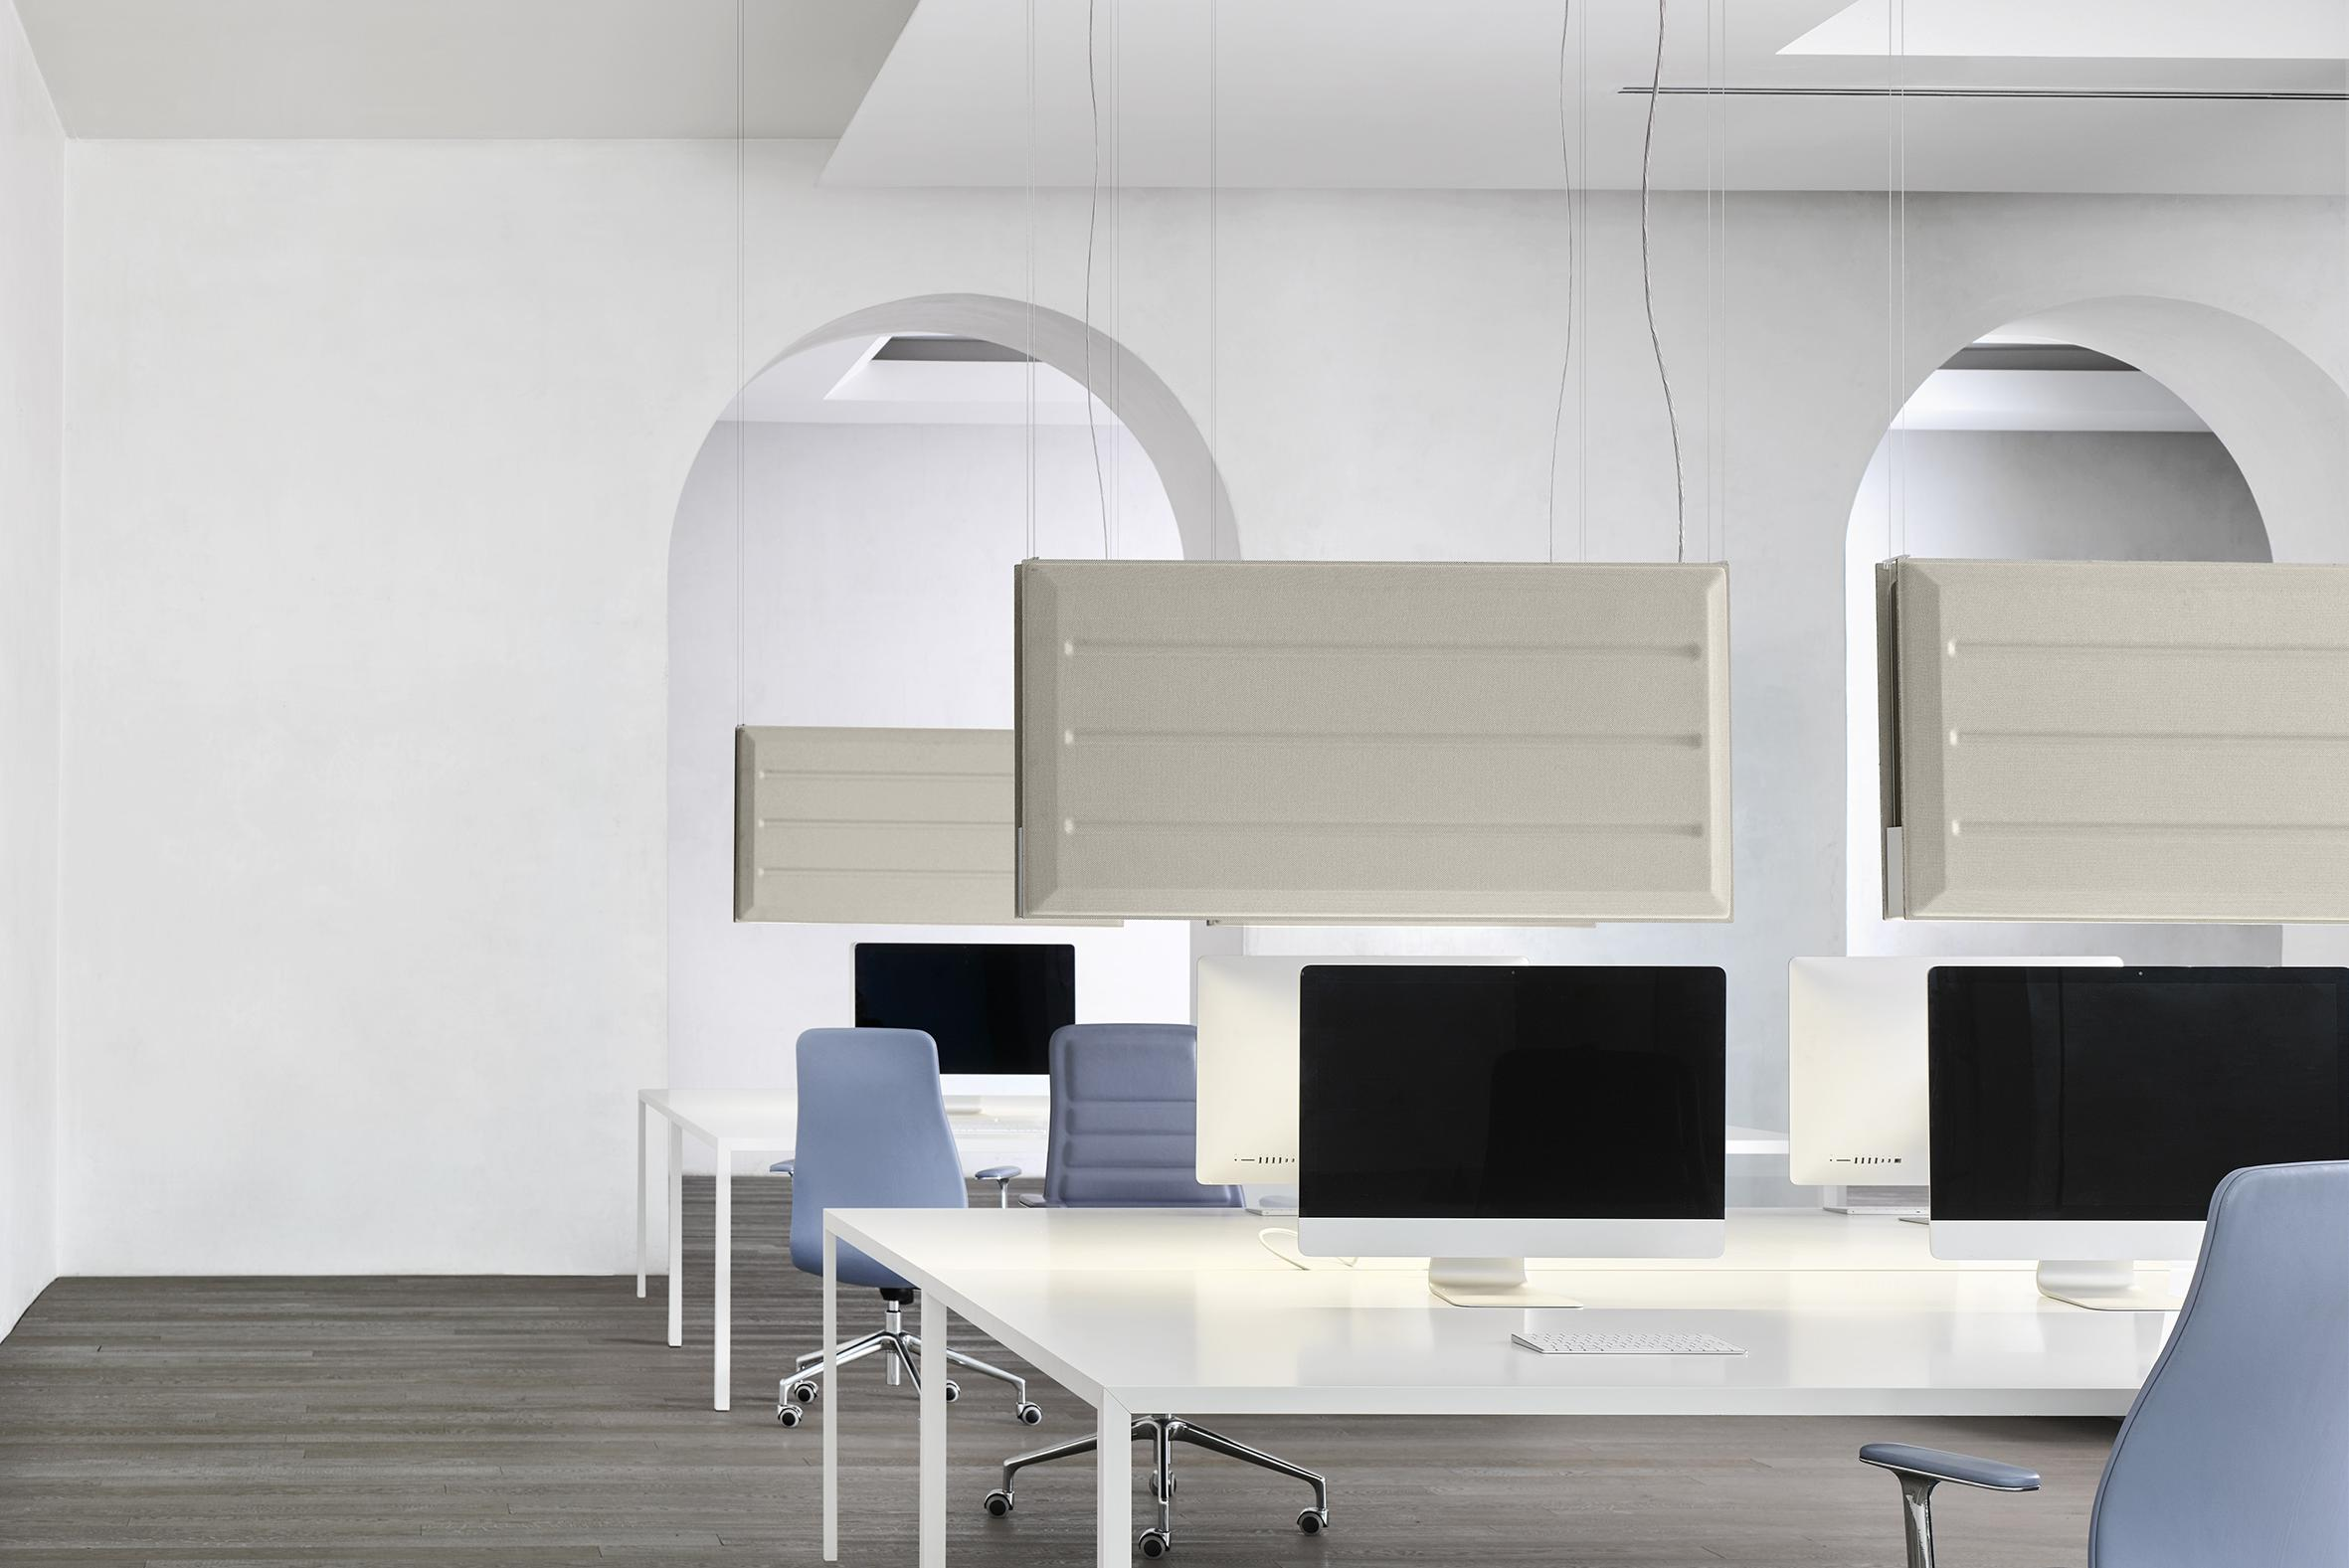 Diade lighting and sound absorption system by Monica Armani for Luceplan